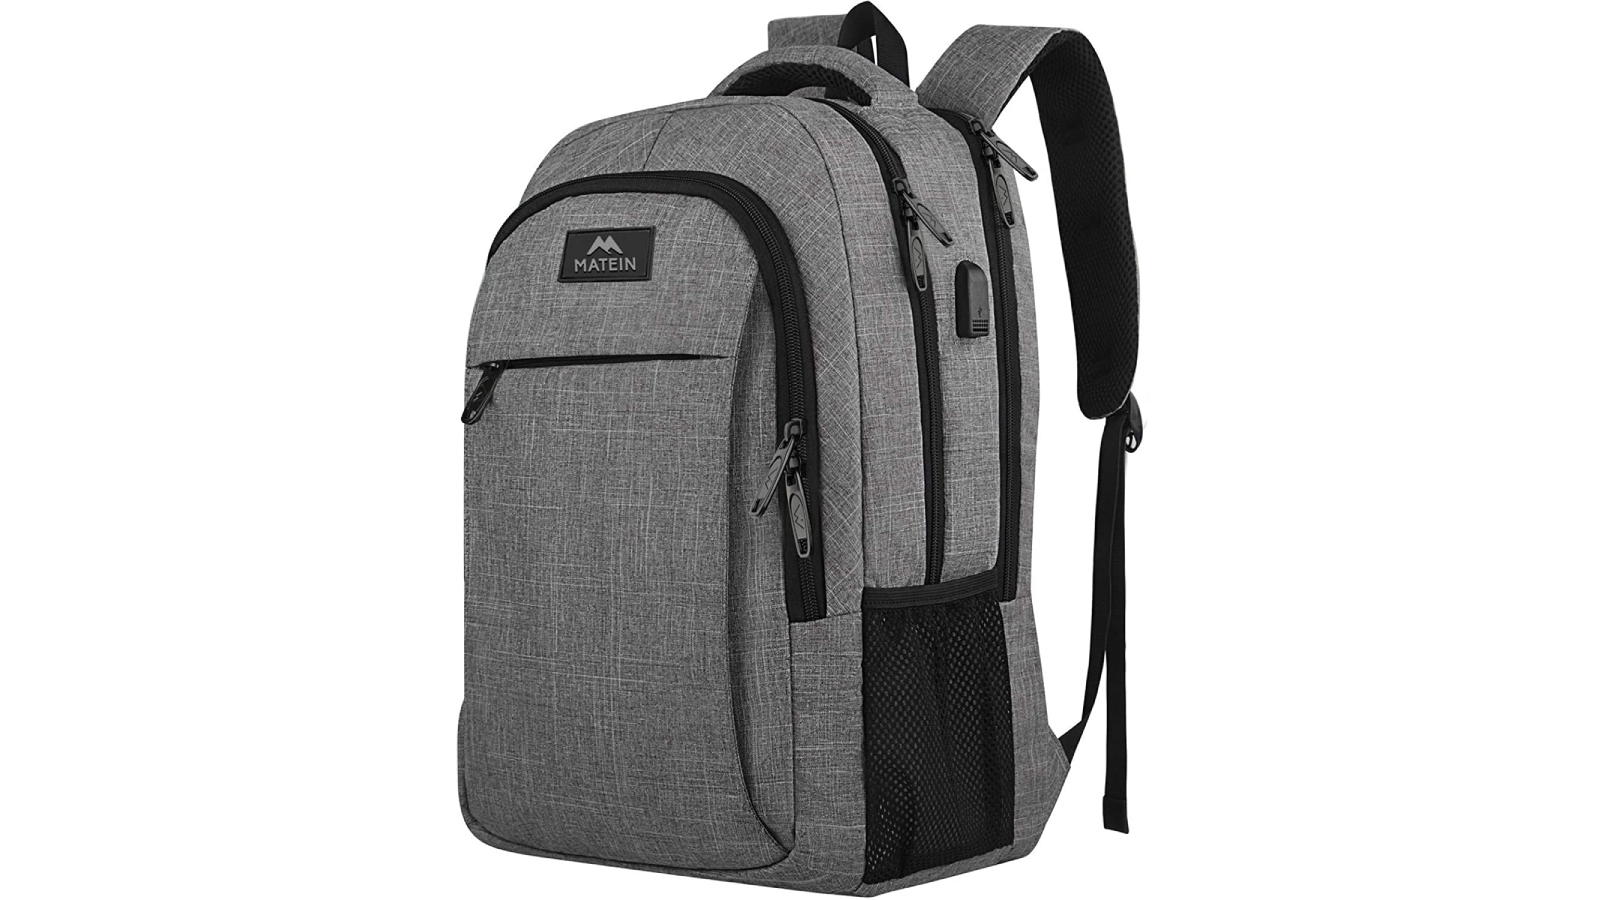 Silver-gray backpack shown at an angle